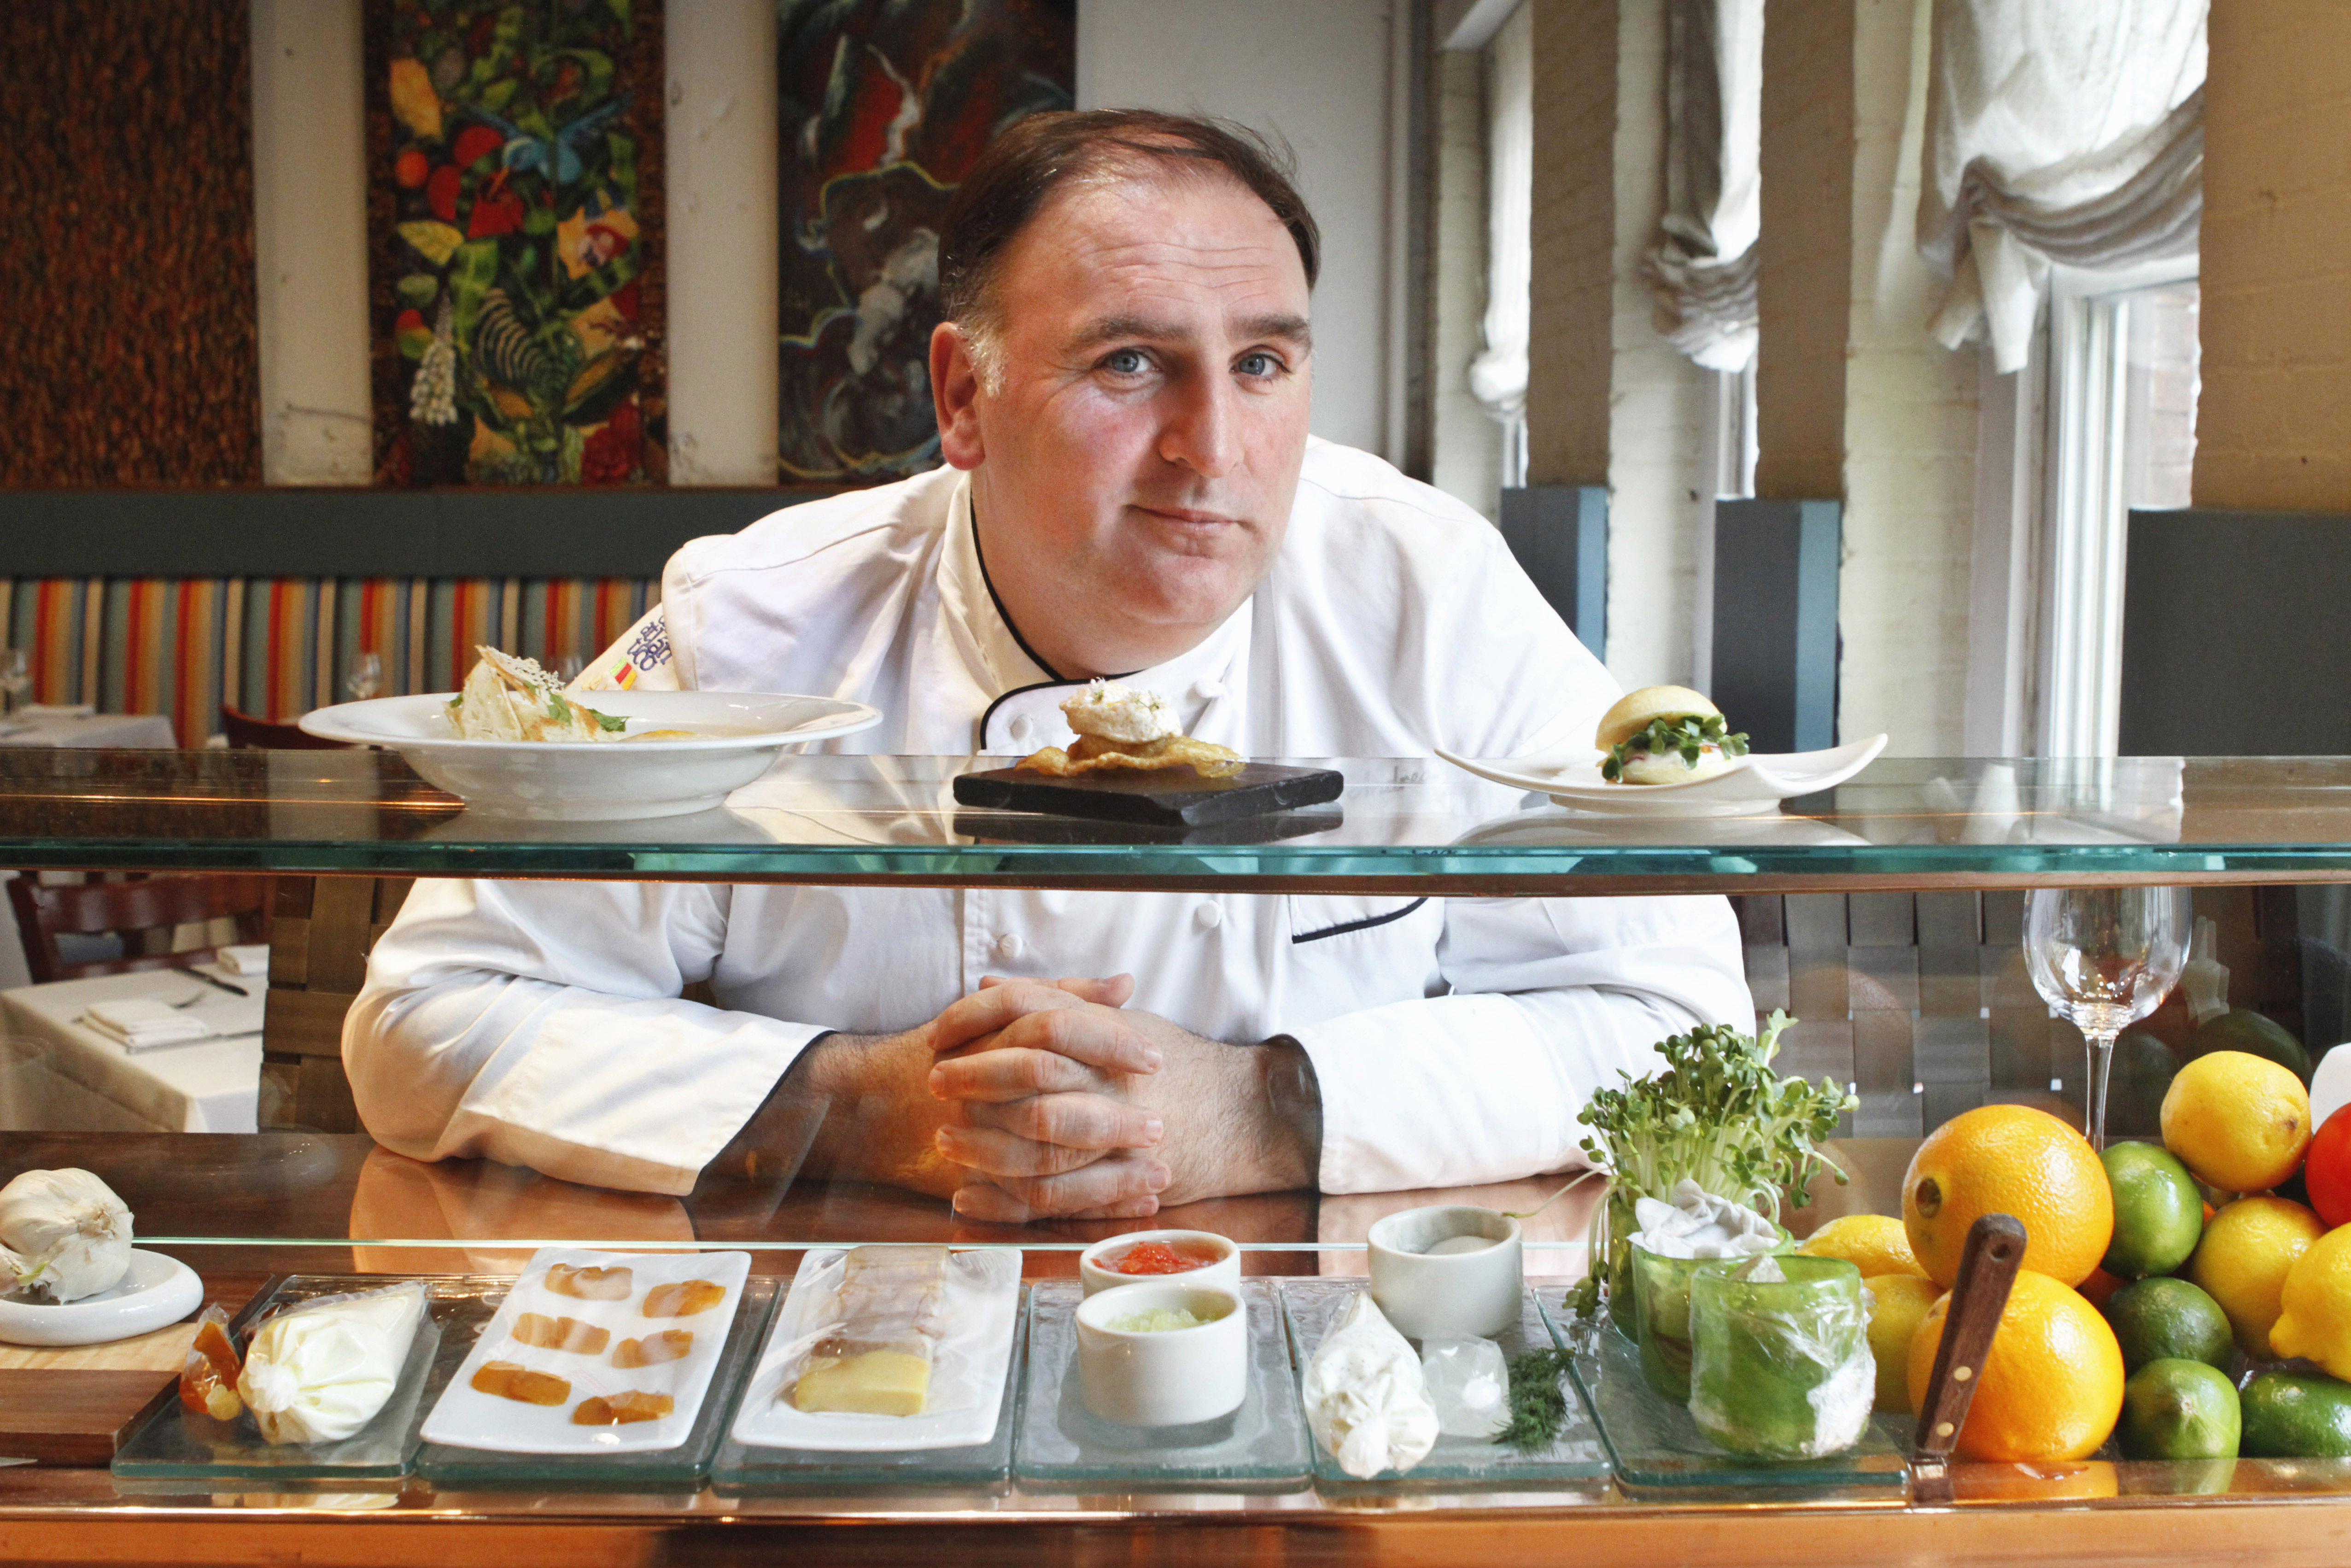 José Andrés says it's now 'impossible' to open restaurant in Trump's D.C. hotel